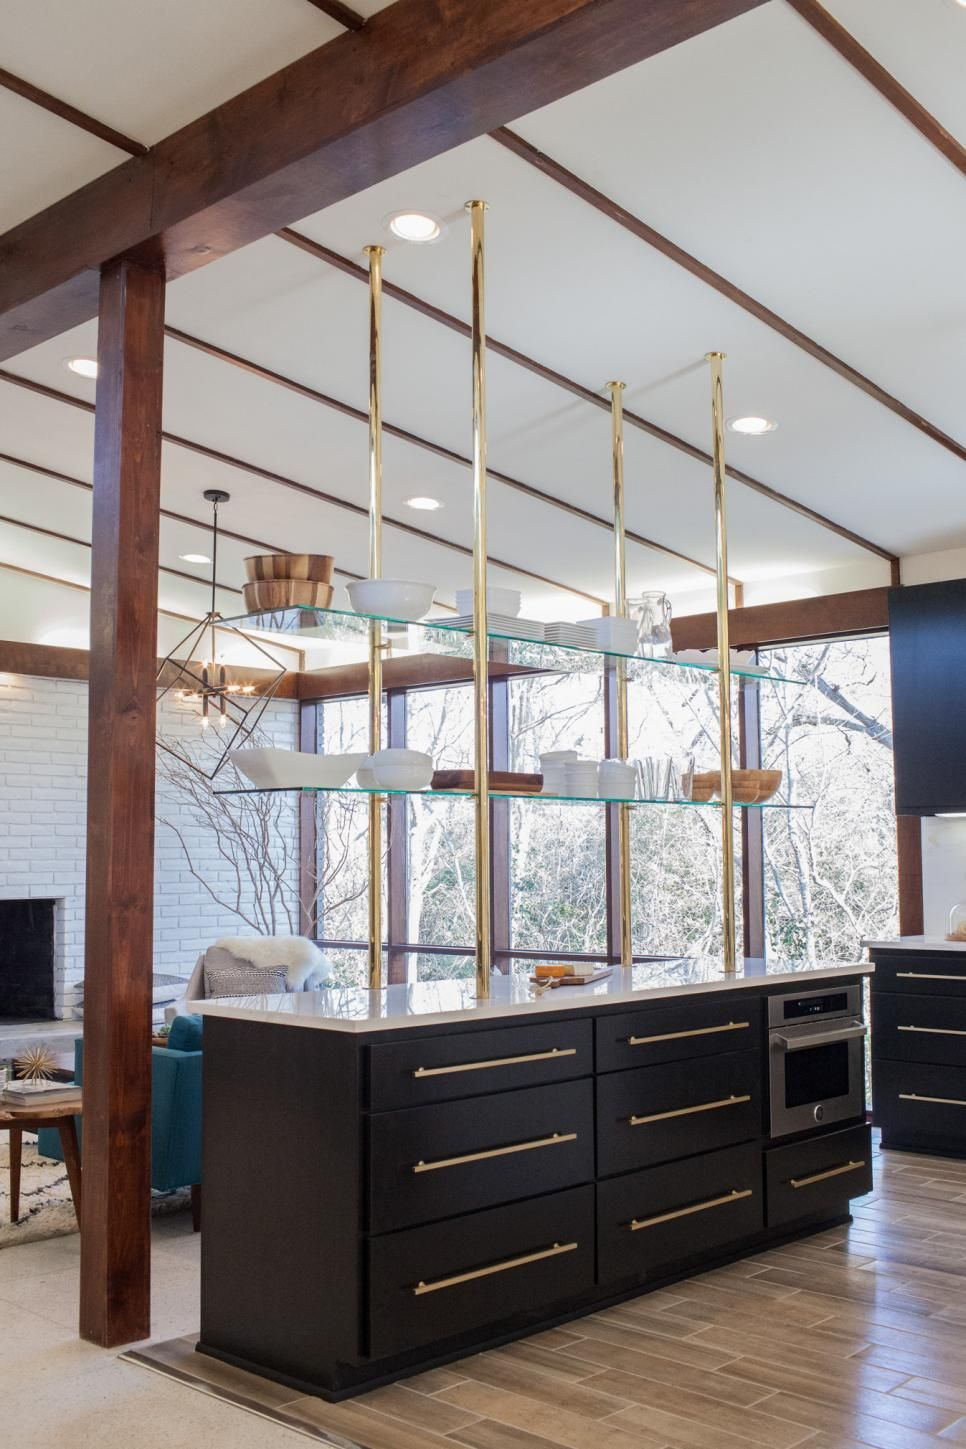 A Fixer Upper Take on Midcentury Modern Joanna gaines